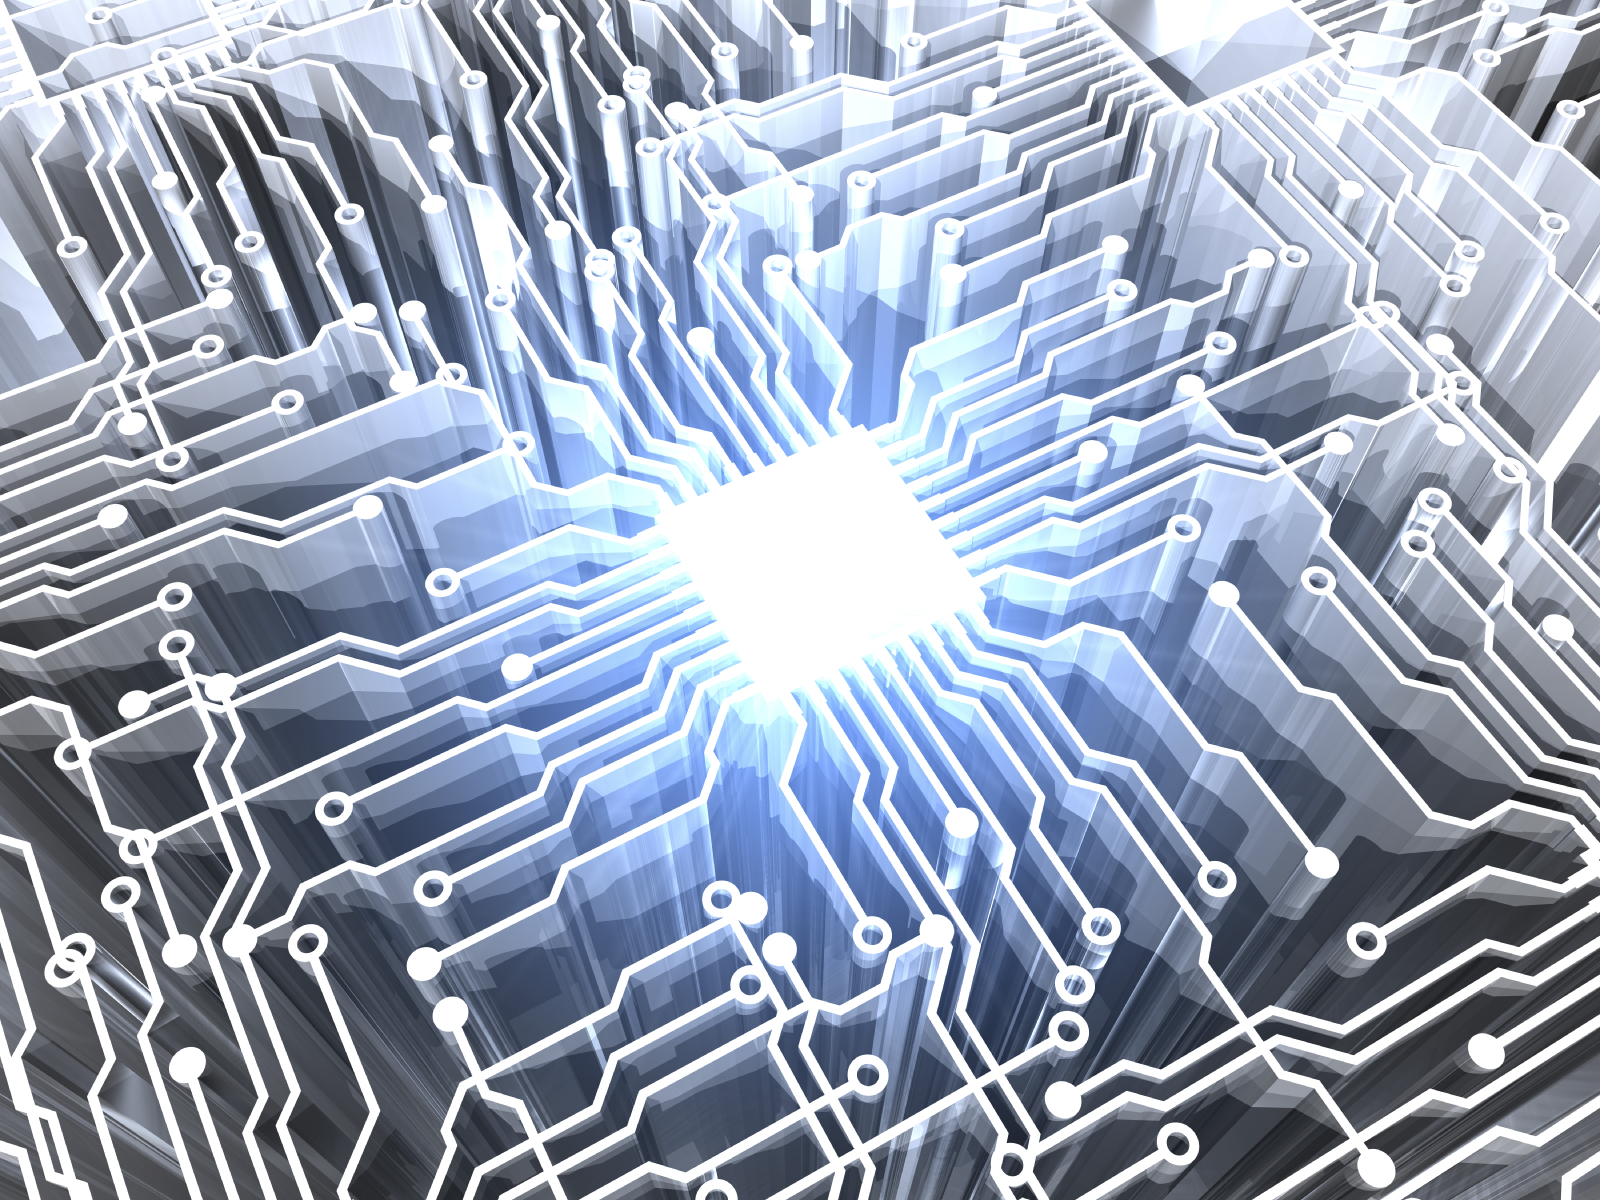 Quantum computers could make today's encryption obsolete